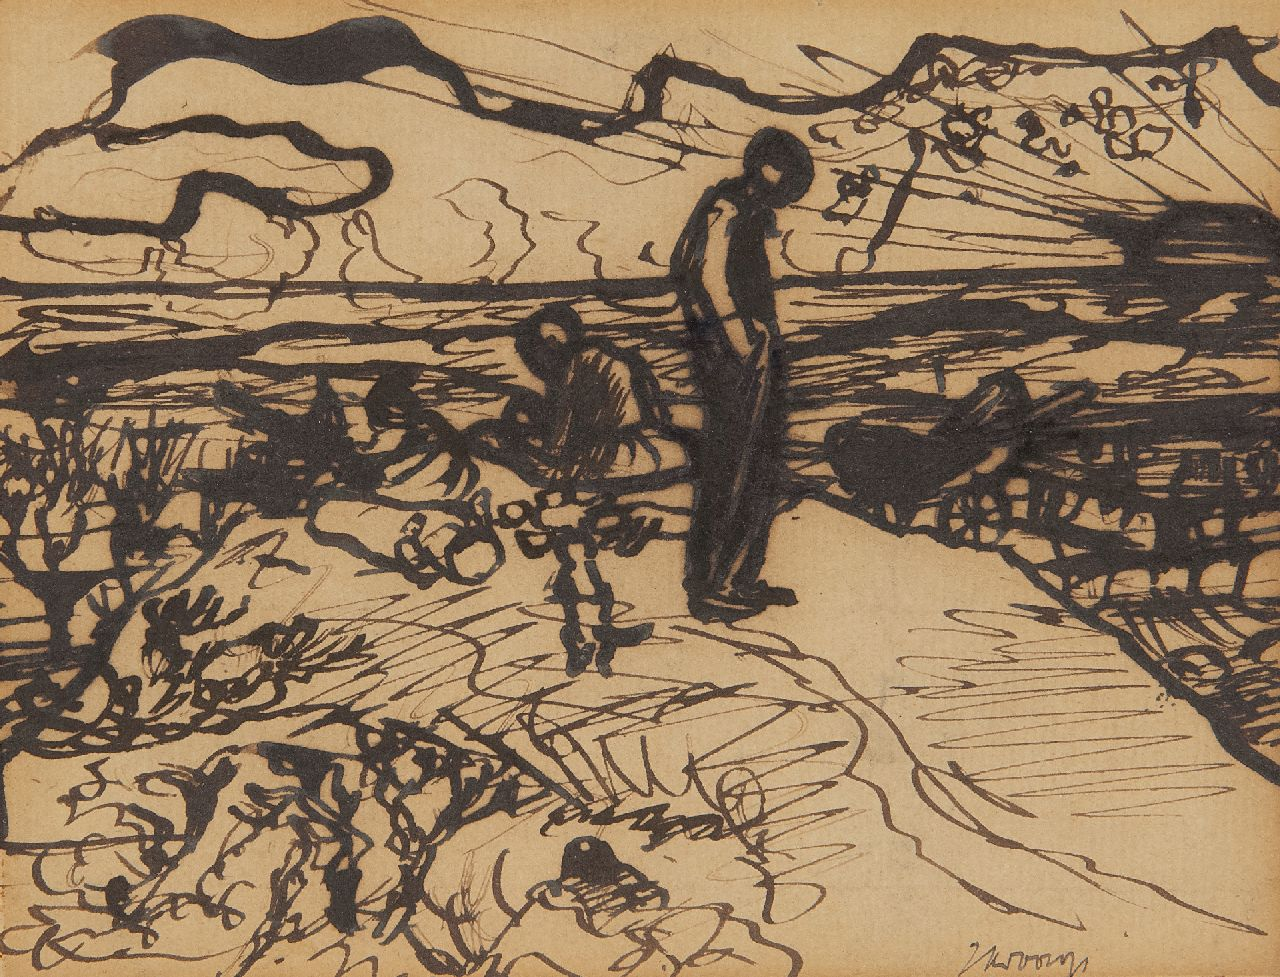 Toorop J.Th.  | Johannes Theodorus 'Jan' Toorop | Watercolours and drawings offered for sale | Vagabonds in the dunes, pen and ink on paper 12.1 x 14.4 cm, signed l.r. and dated l.m. 1890